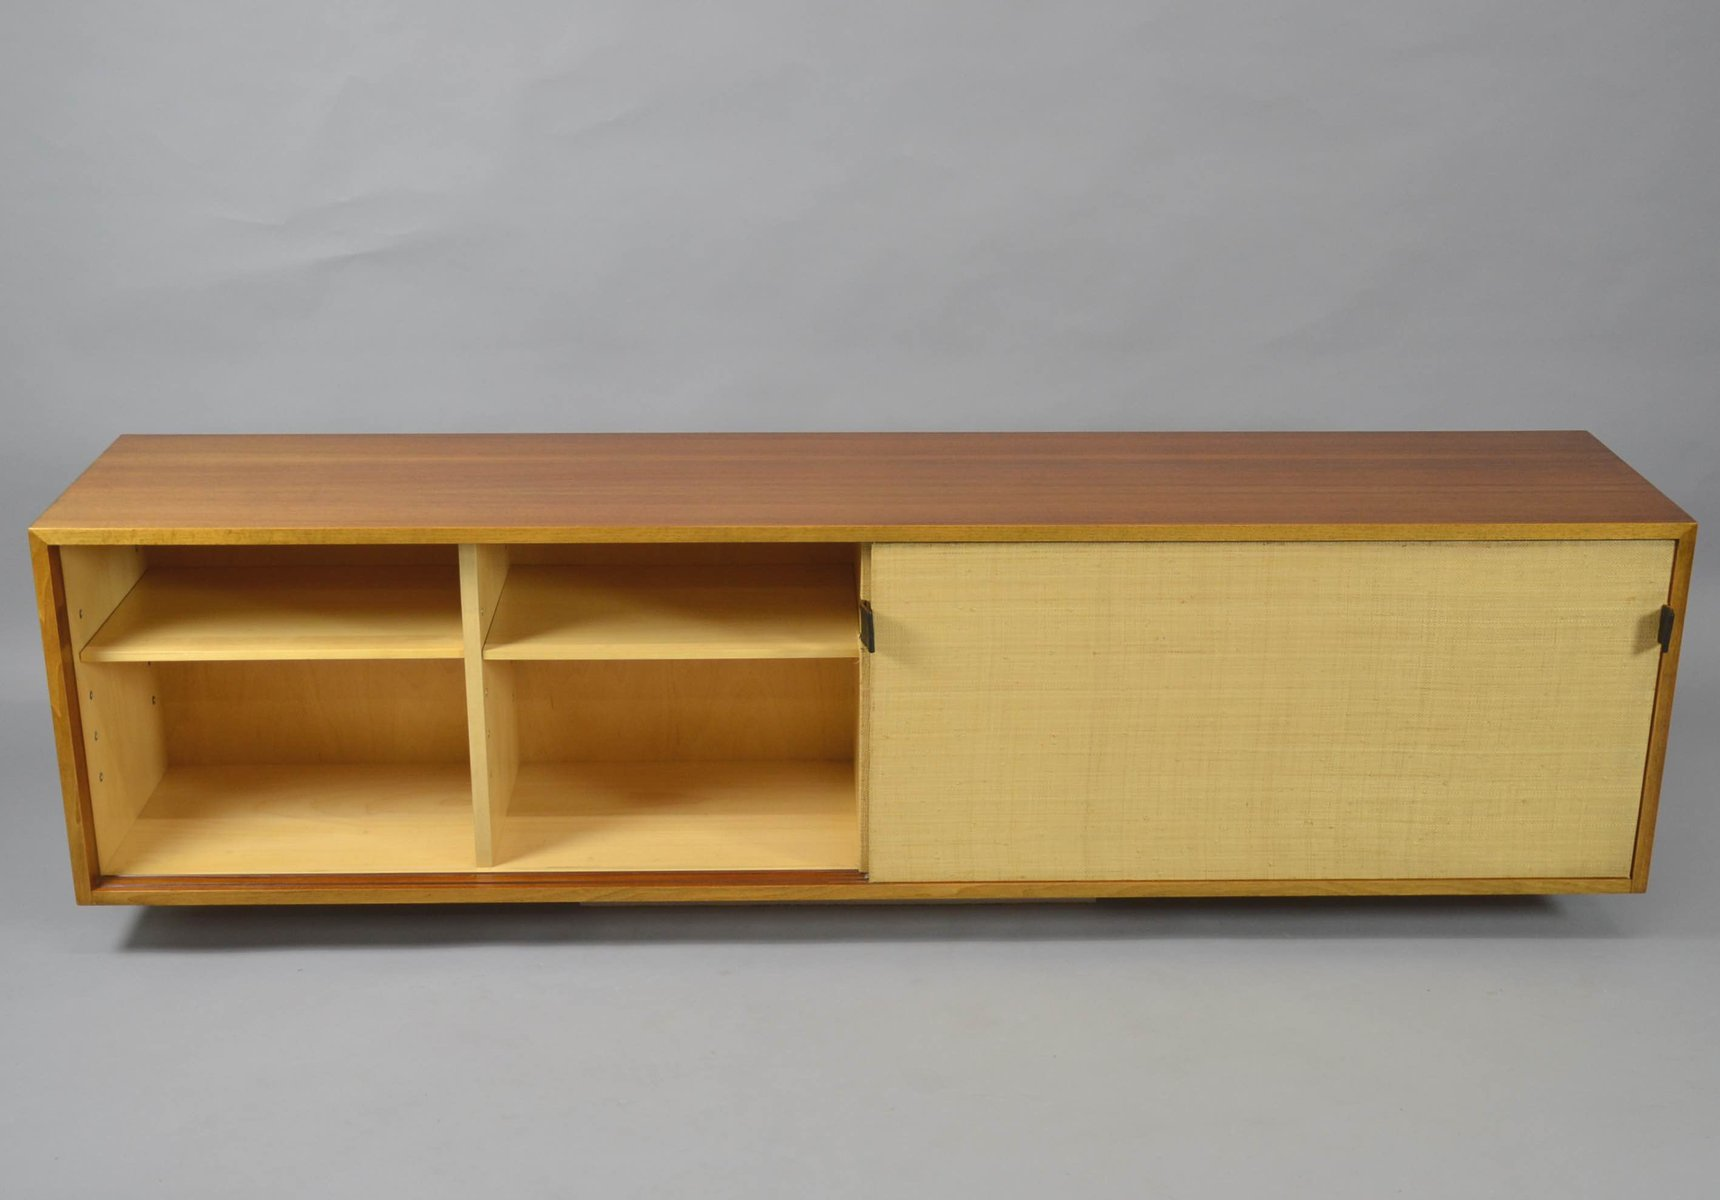 Vintage Hanging Cabinet With Sliding Doors By Florence Knoll For Knoll